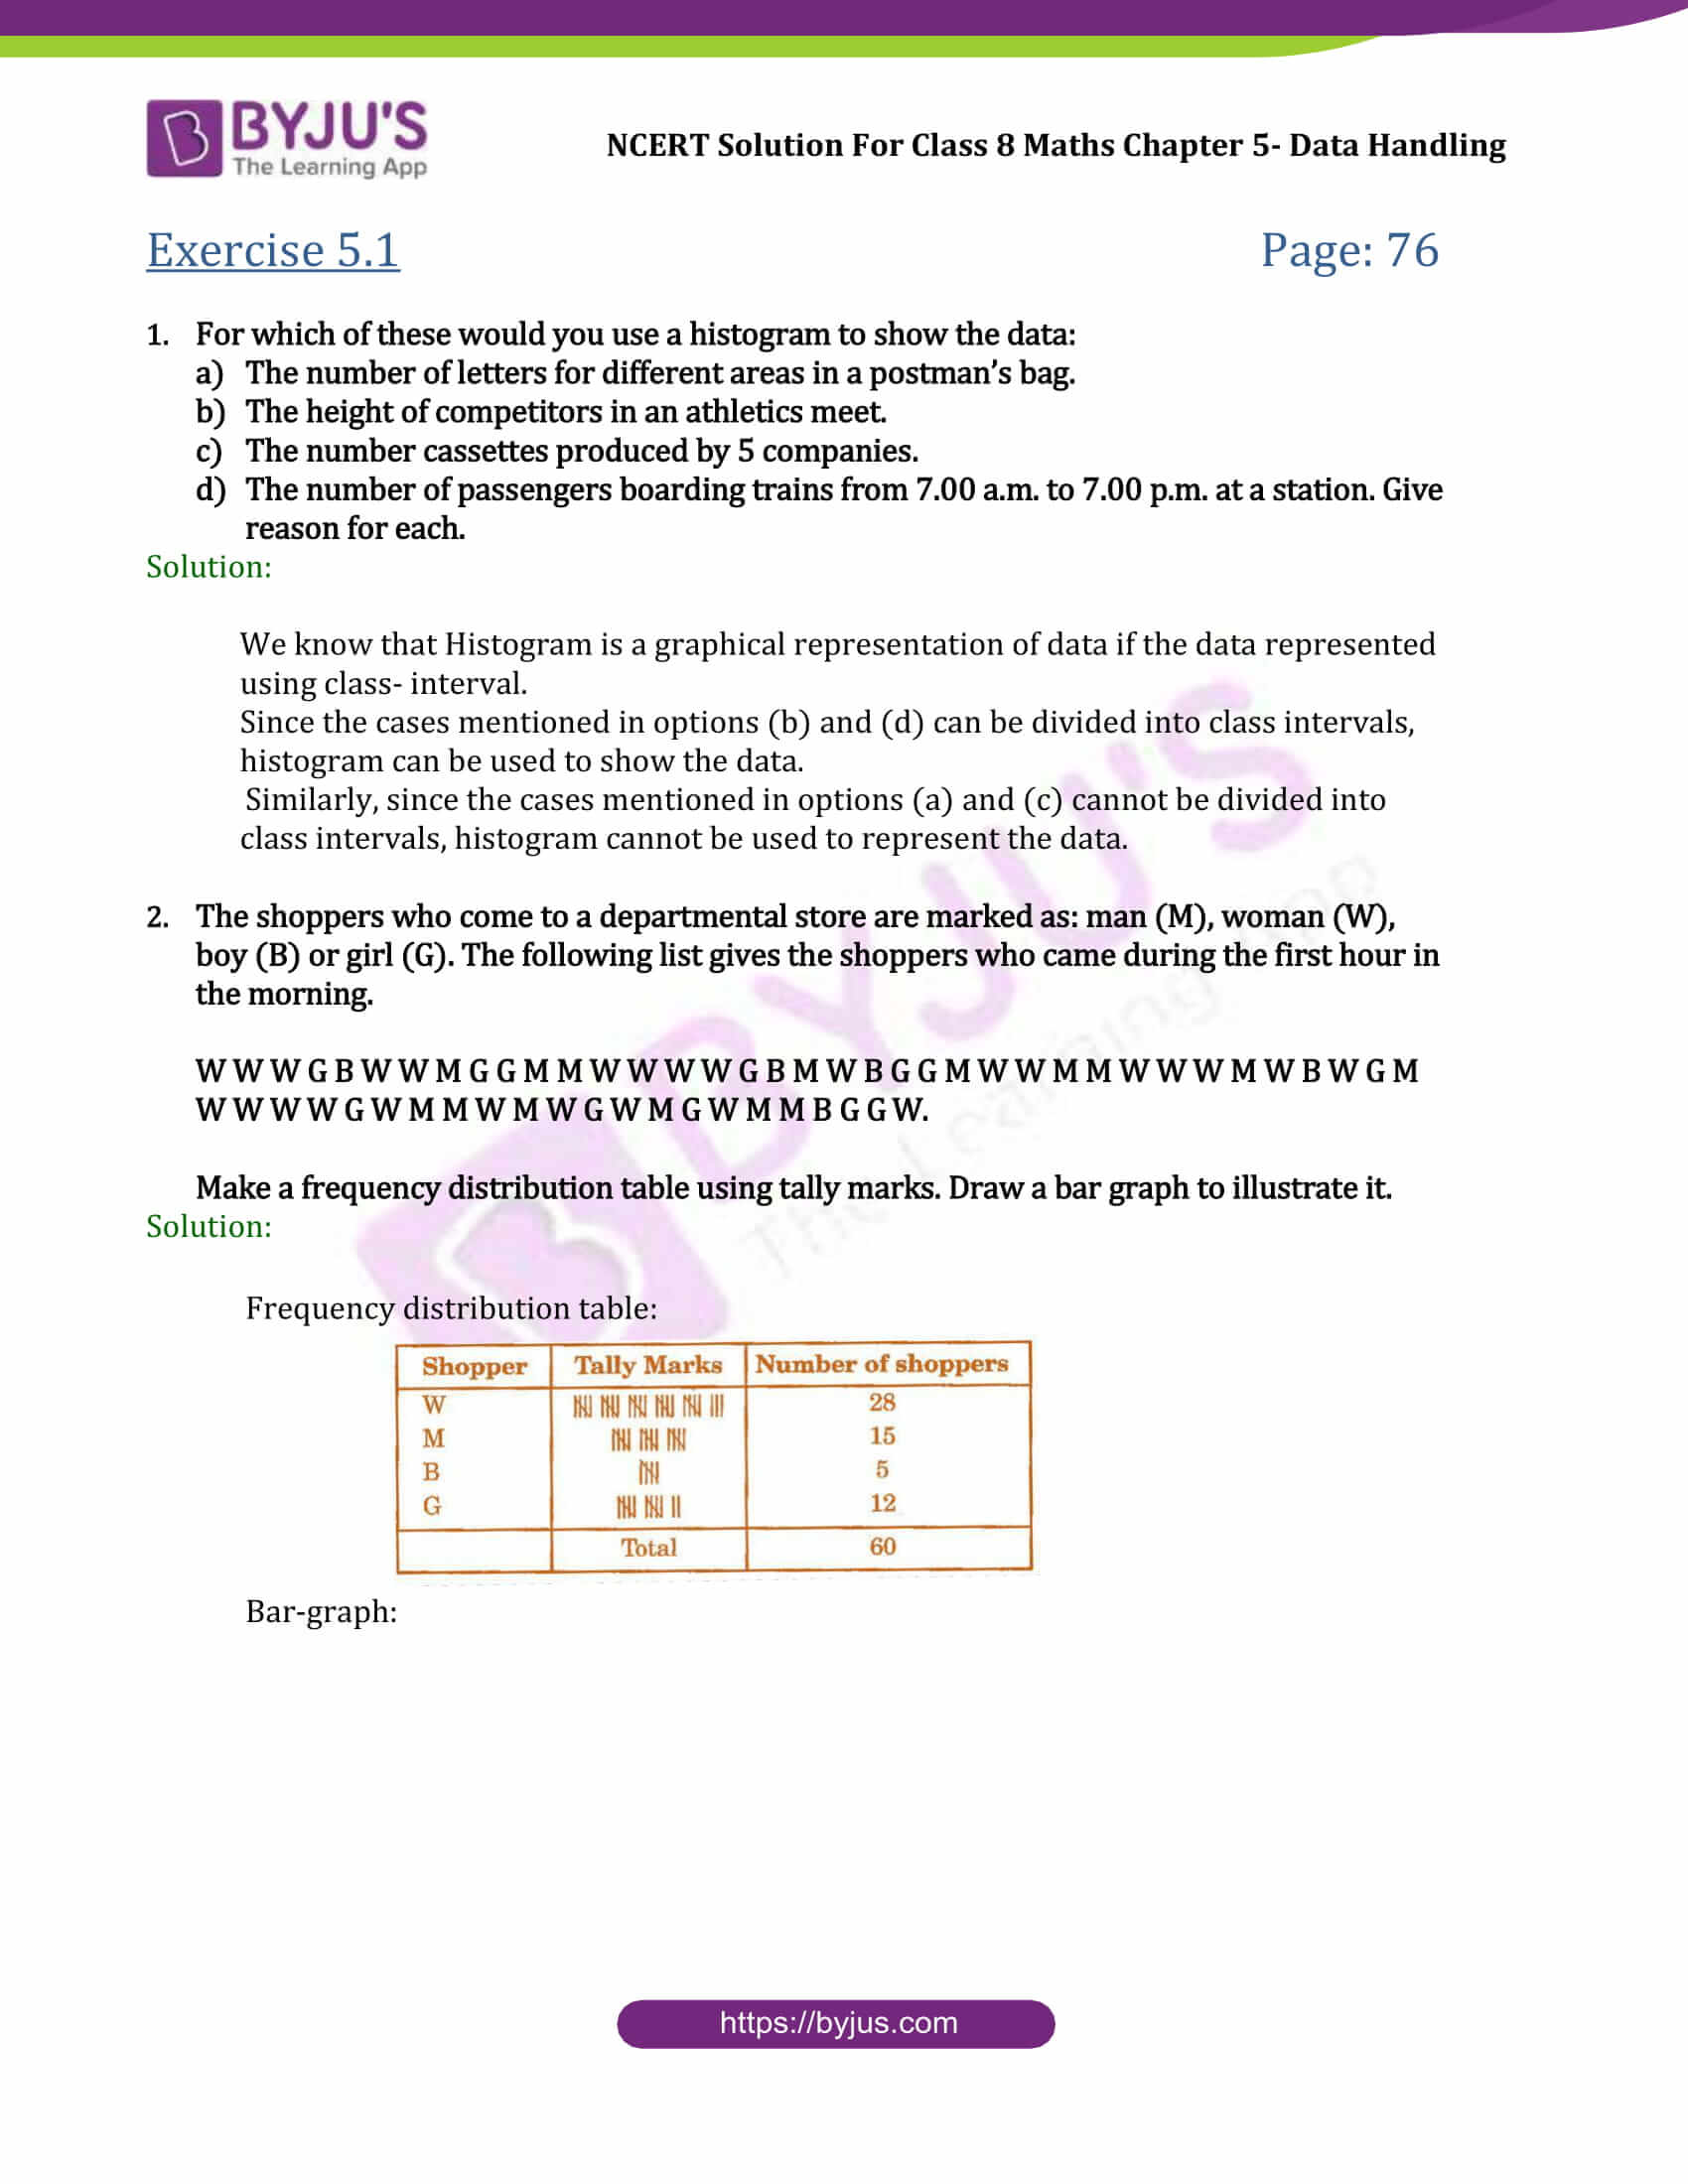 Zoom in science class 8 solutions